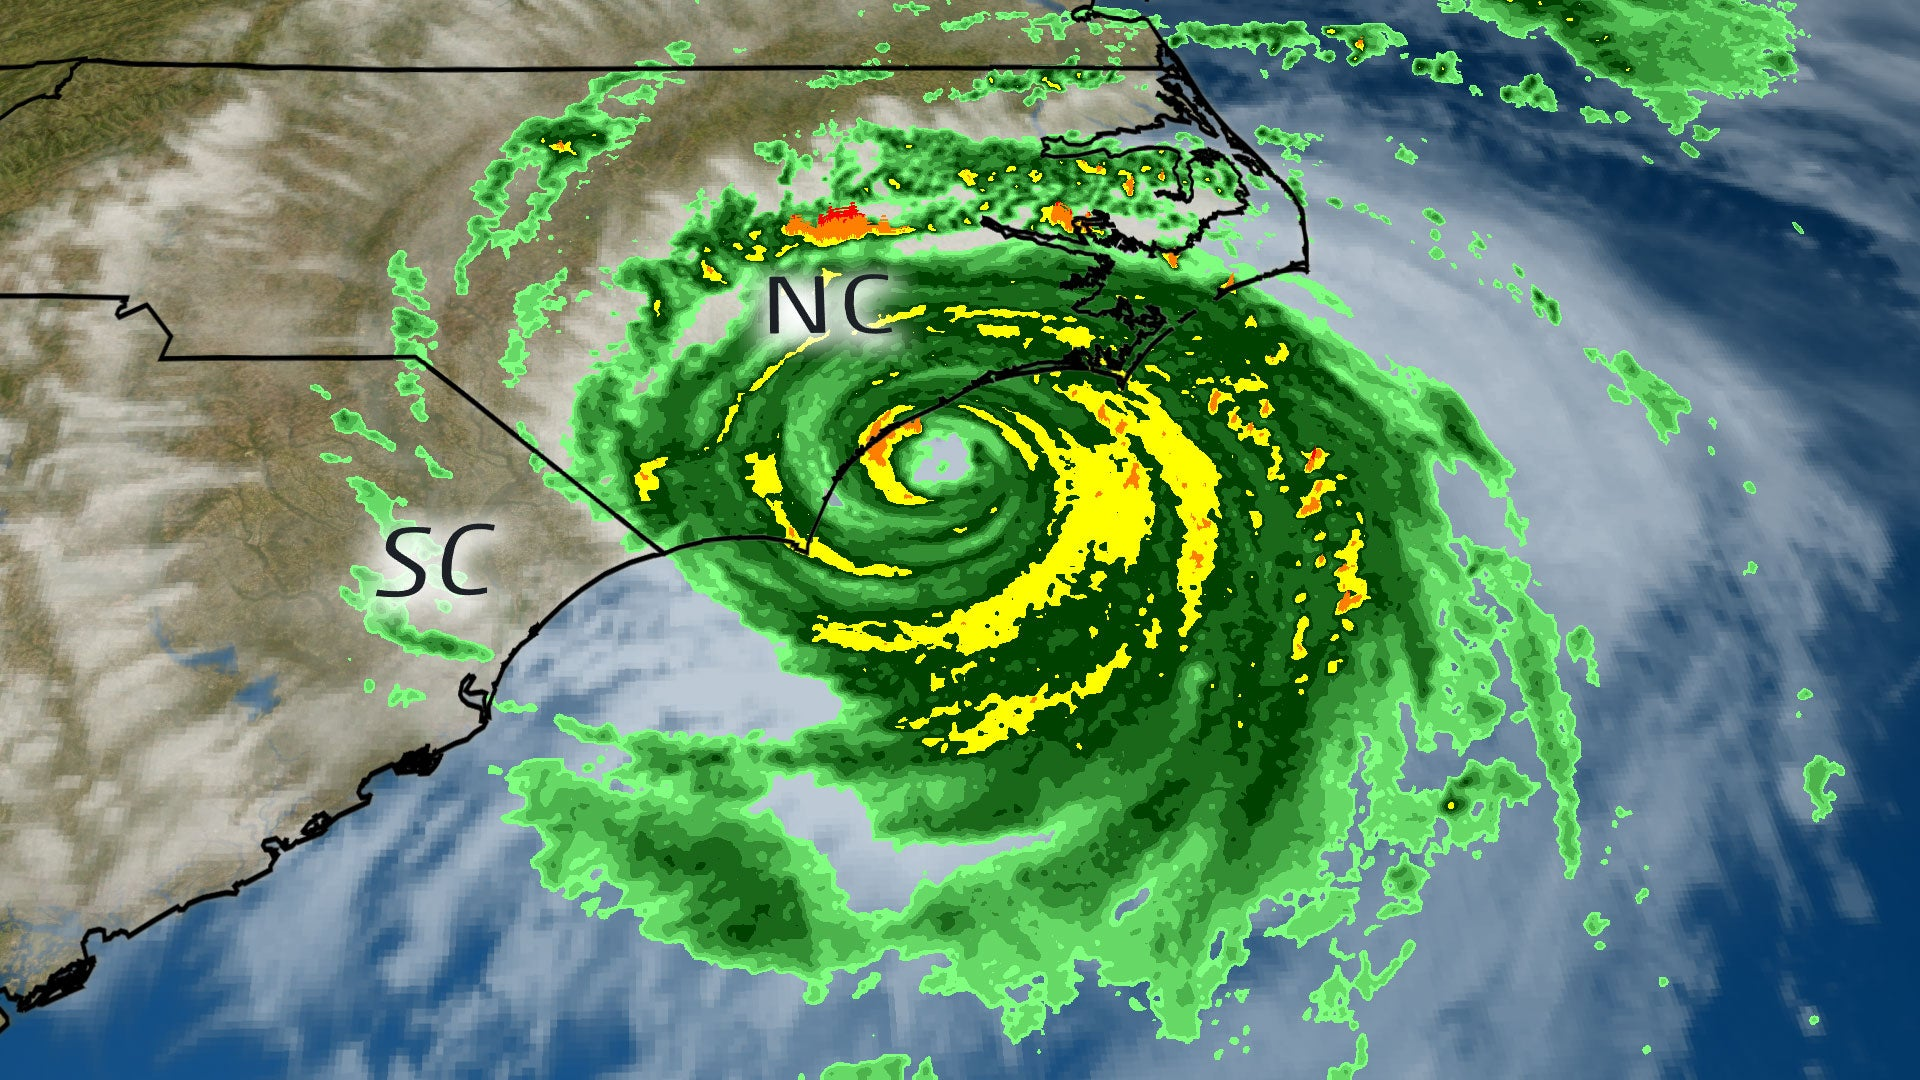 hurricane florence has made landfall near wrightsville